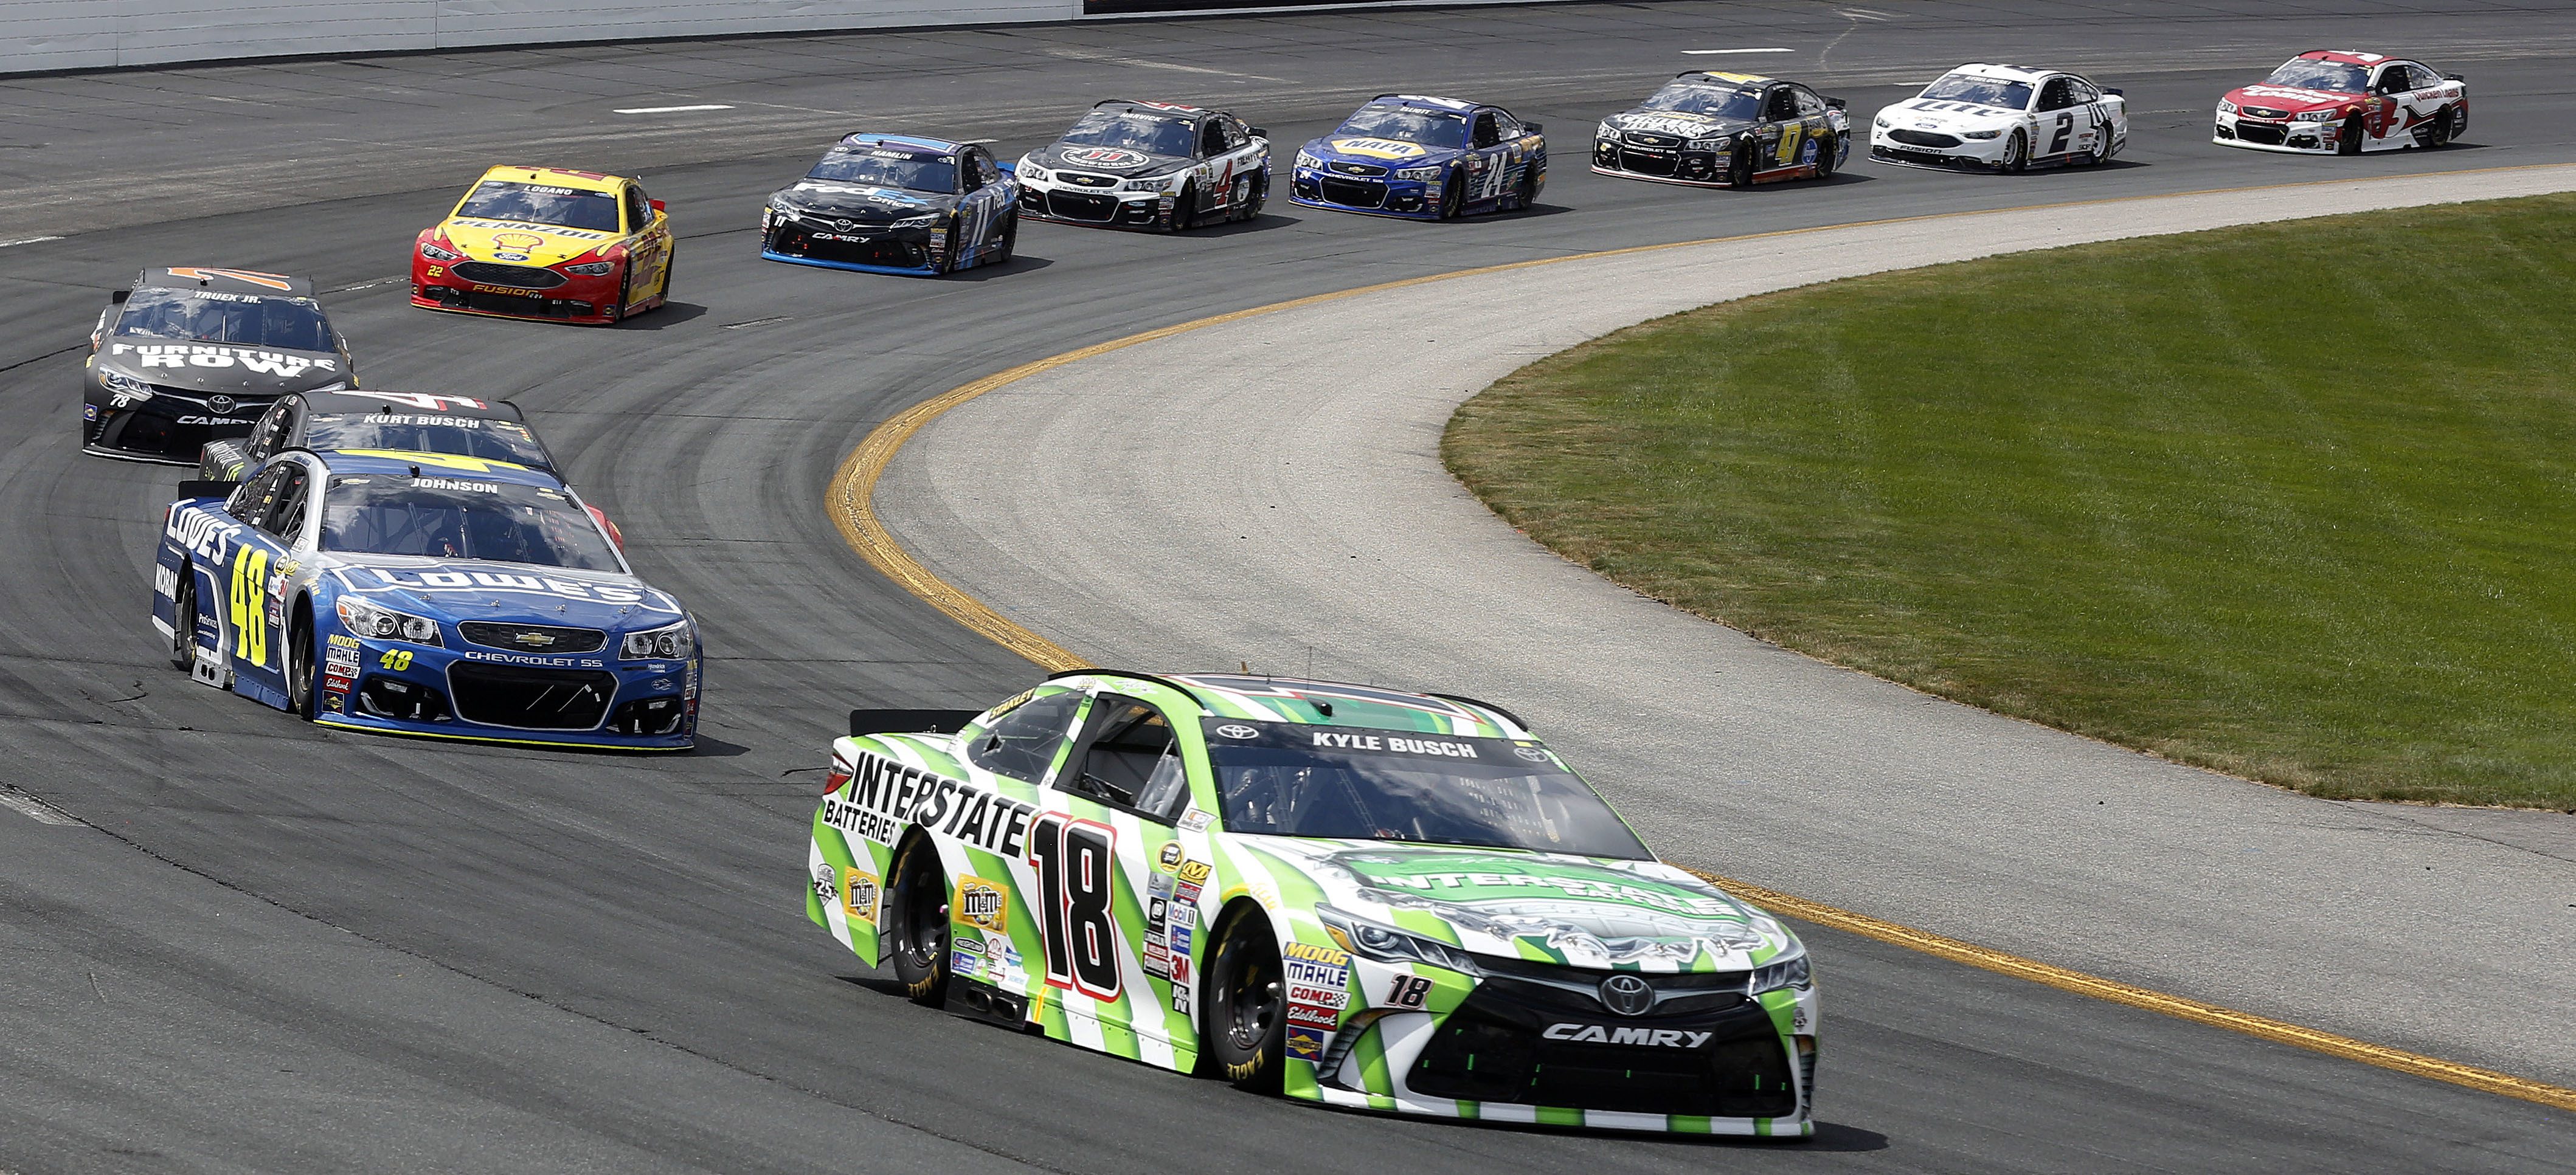 Kyle Busch (18) holds on to an early lead over Jimmie Johnson (48) in the New Hampshire 301 auto race at New Hampshire Motor Speedway Sunday, July 17, 2016, in ,NH (AP Photo/Jim Cole)